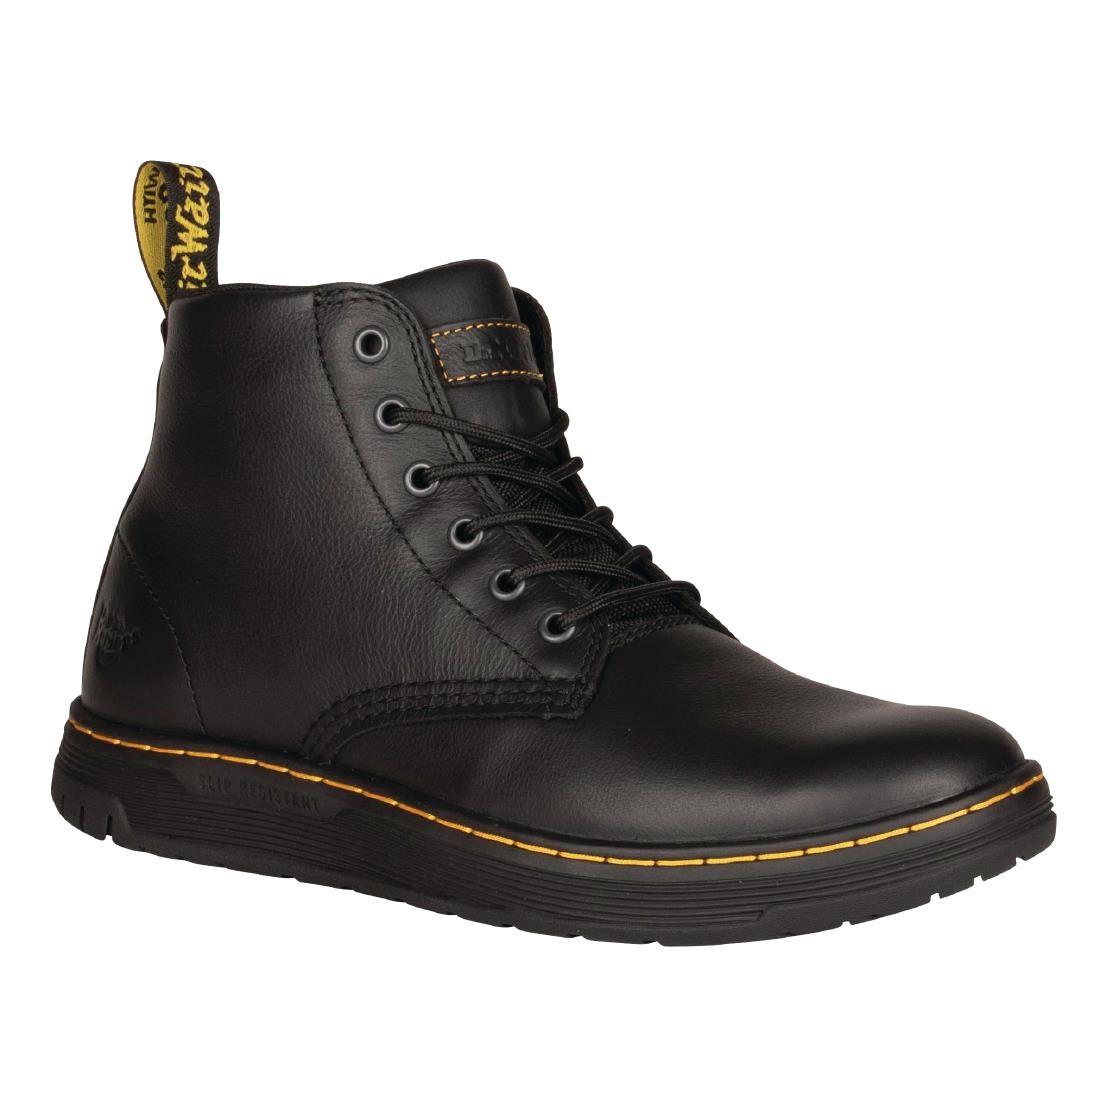 Image of Dr Martens Amwell SR Boot Size 11